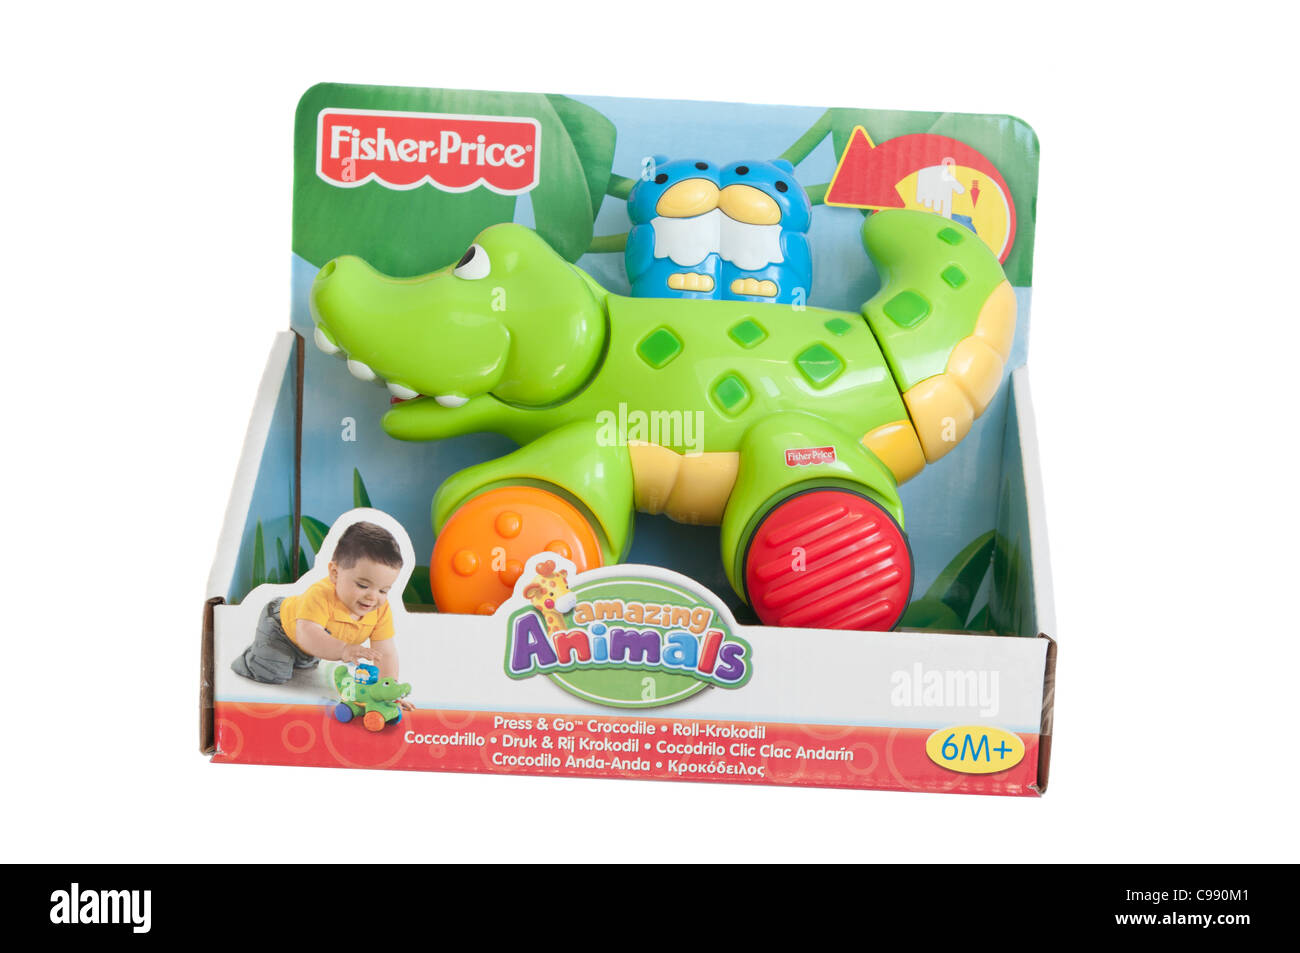 Childrens childs Fisher Price Plastic Toy Toys - Stock Image